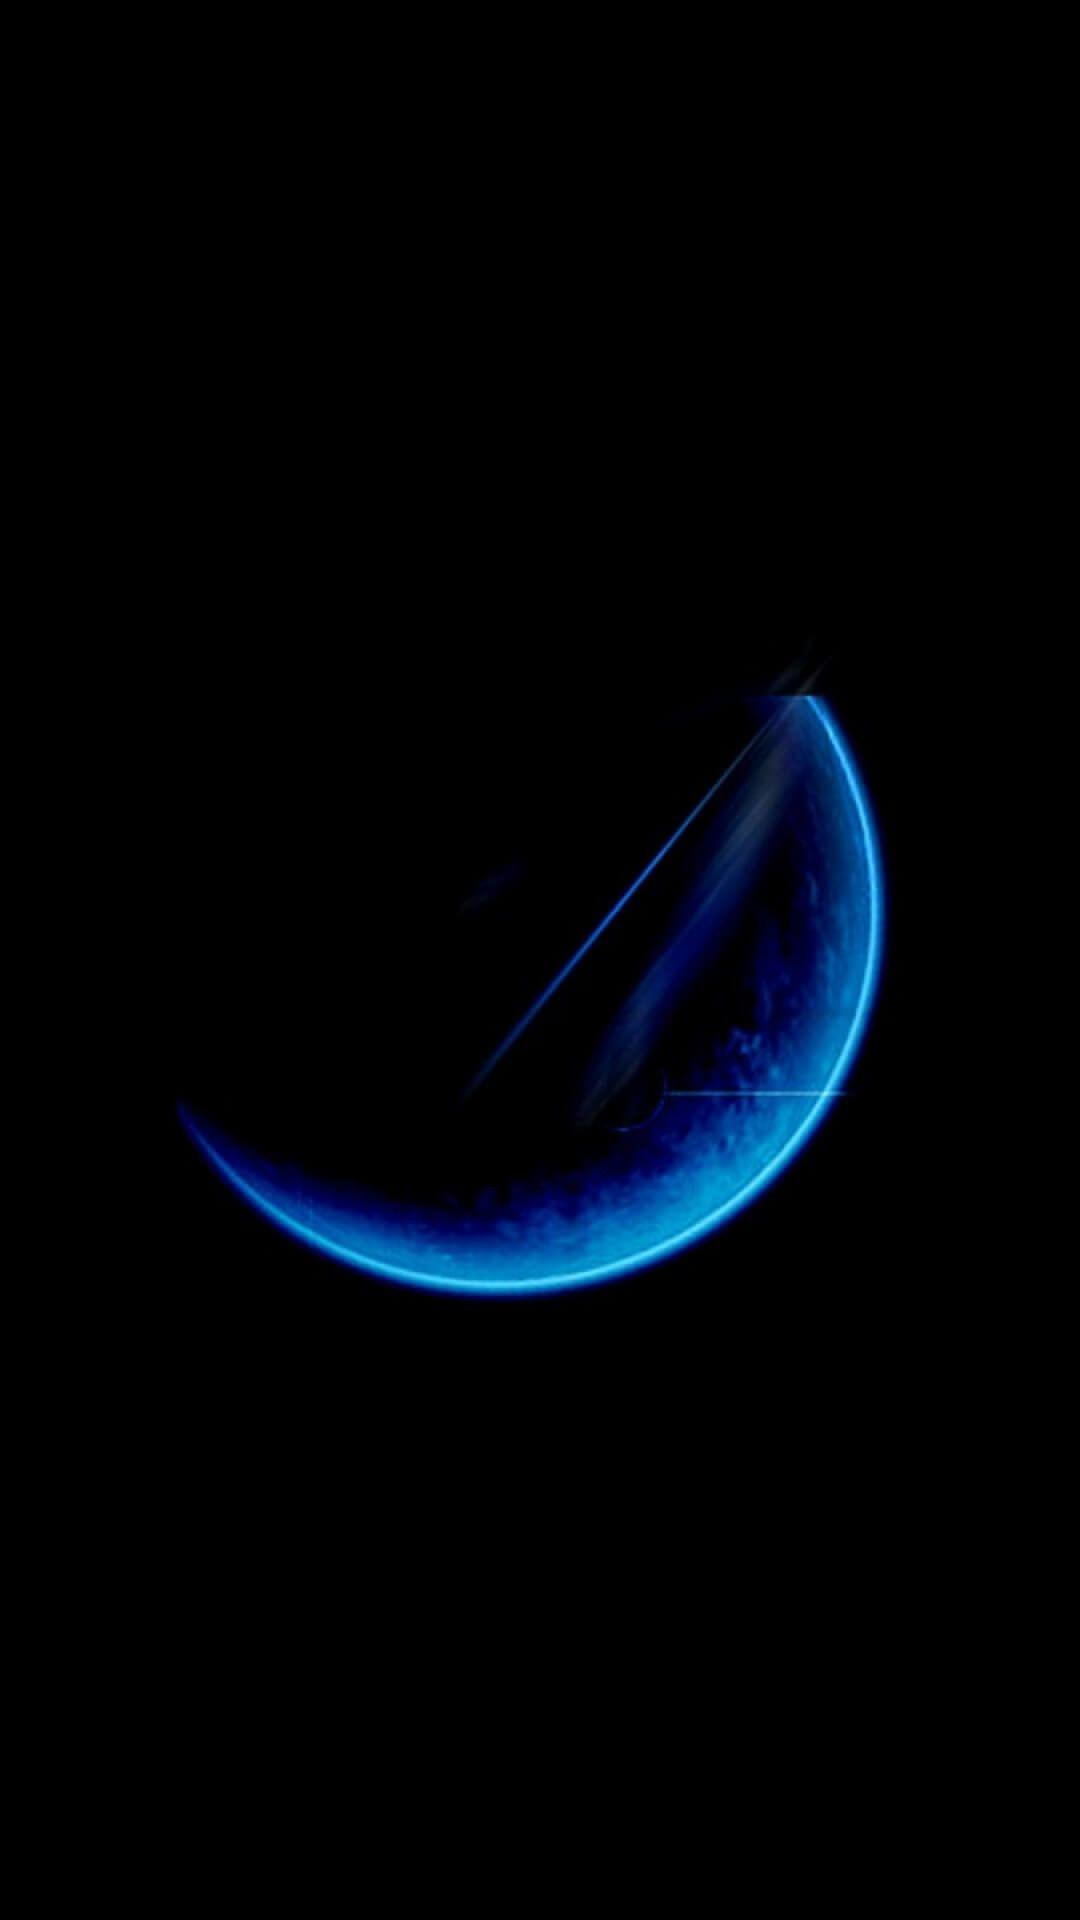 Hd Black And Blue Wallpapers For Mobile Wallpaper Cave